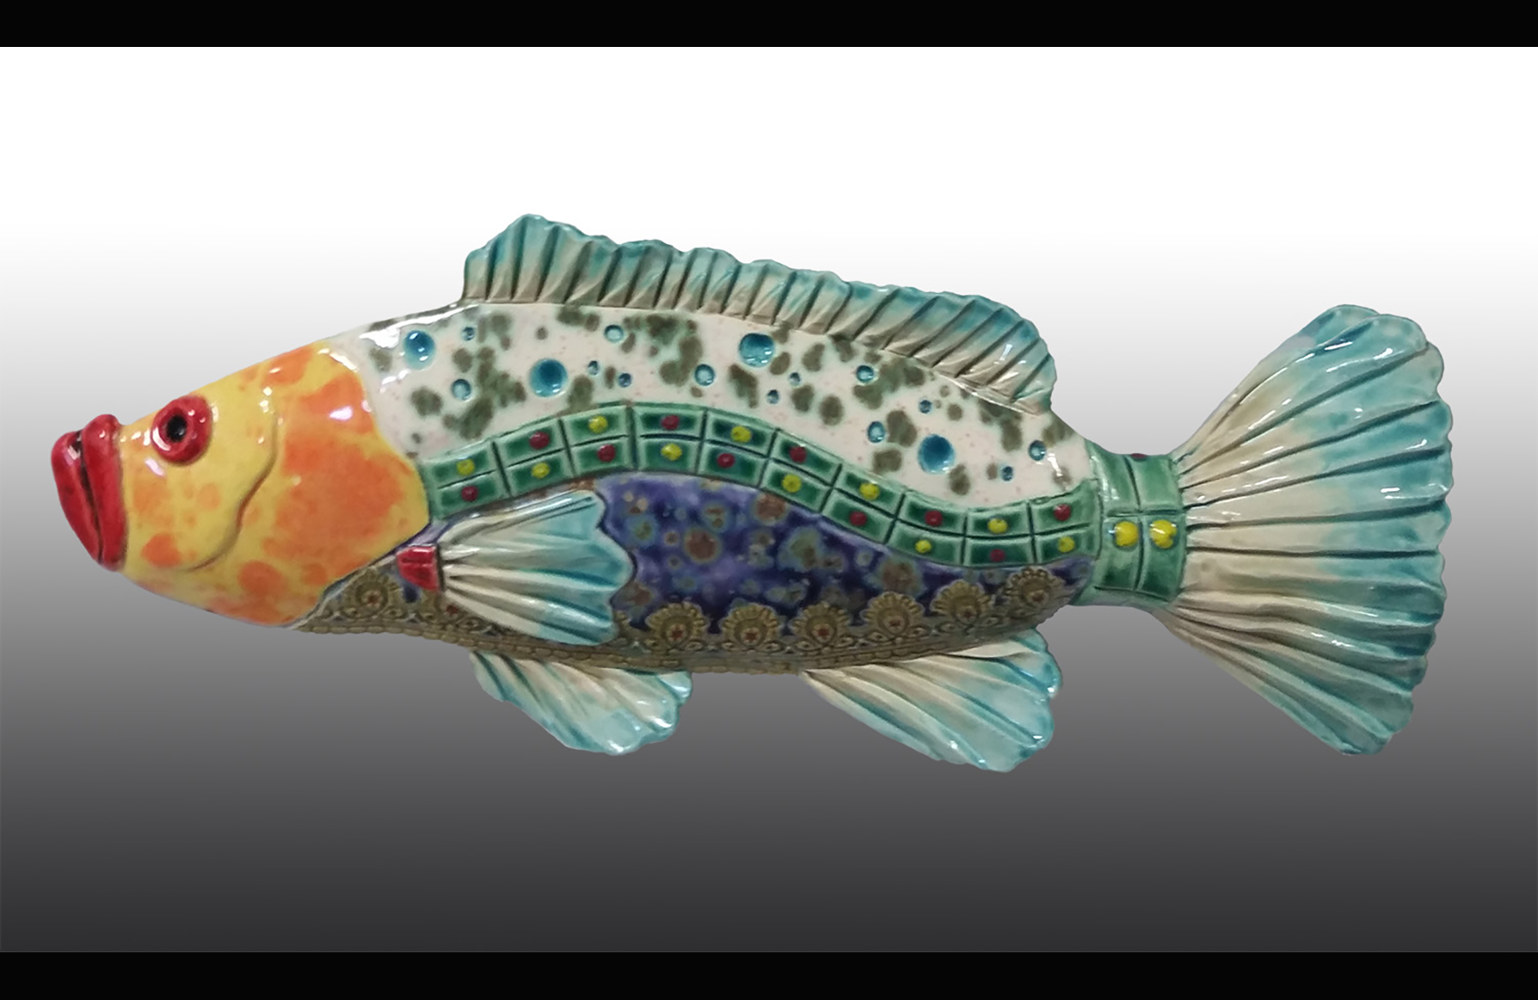 Grouper by Cathy Crain